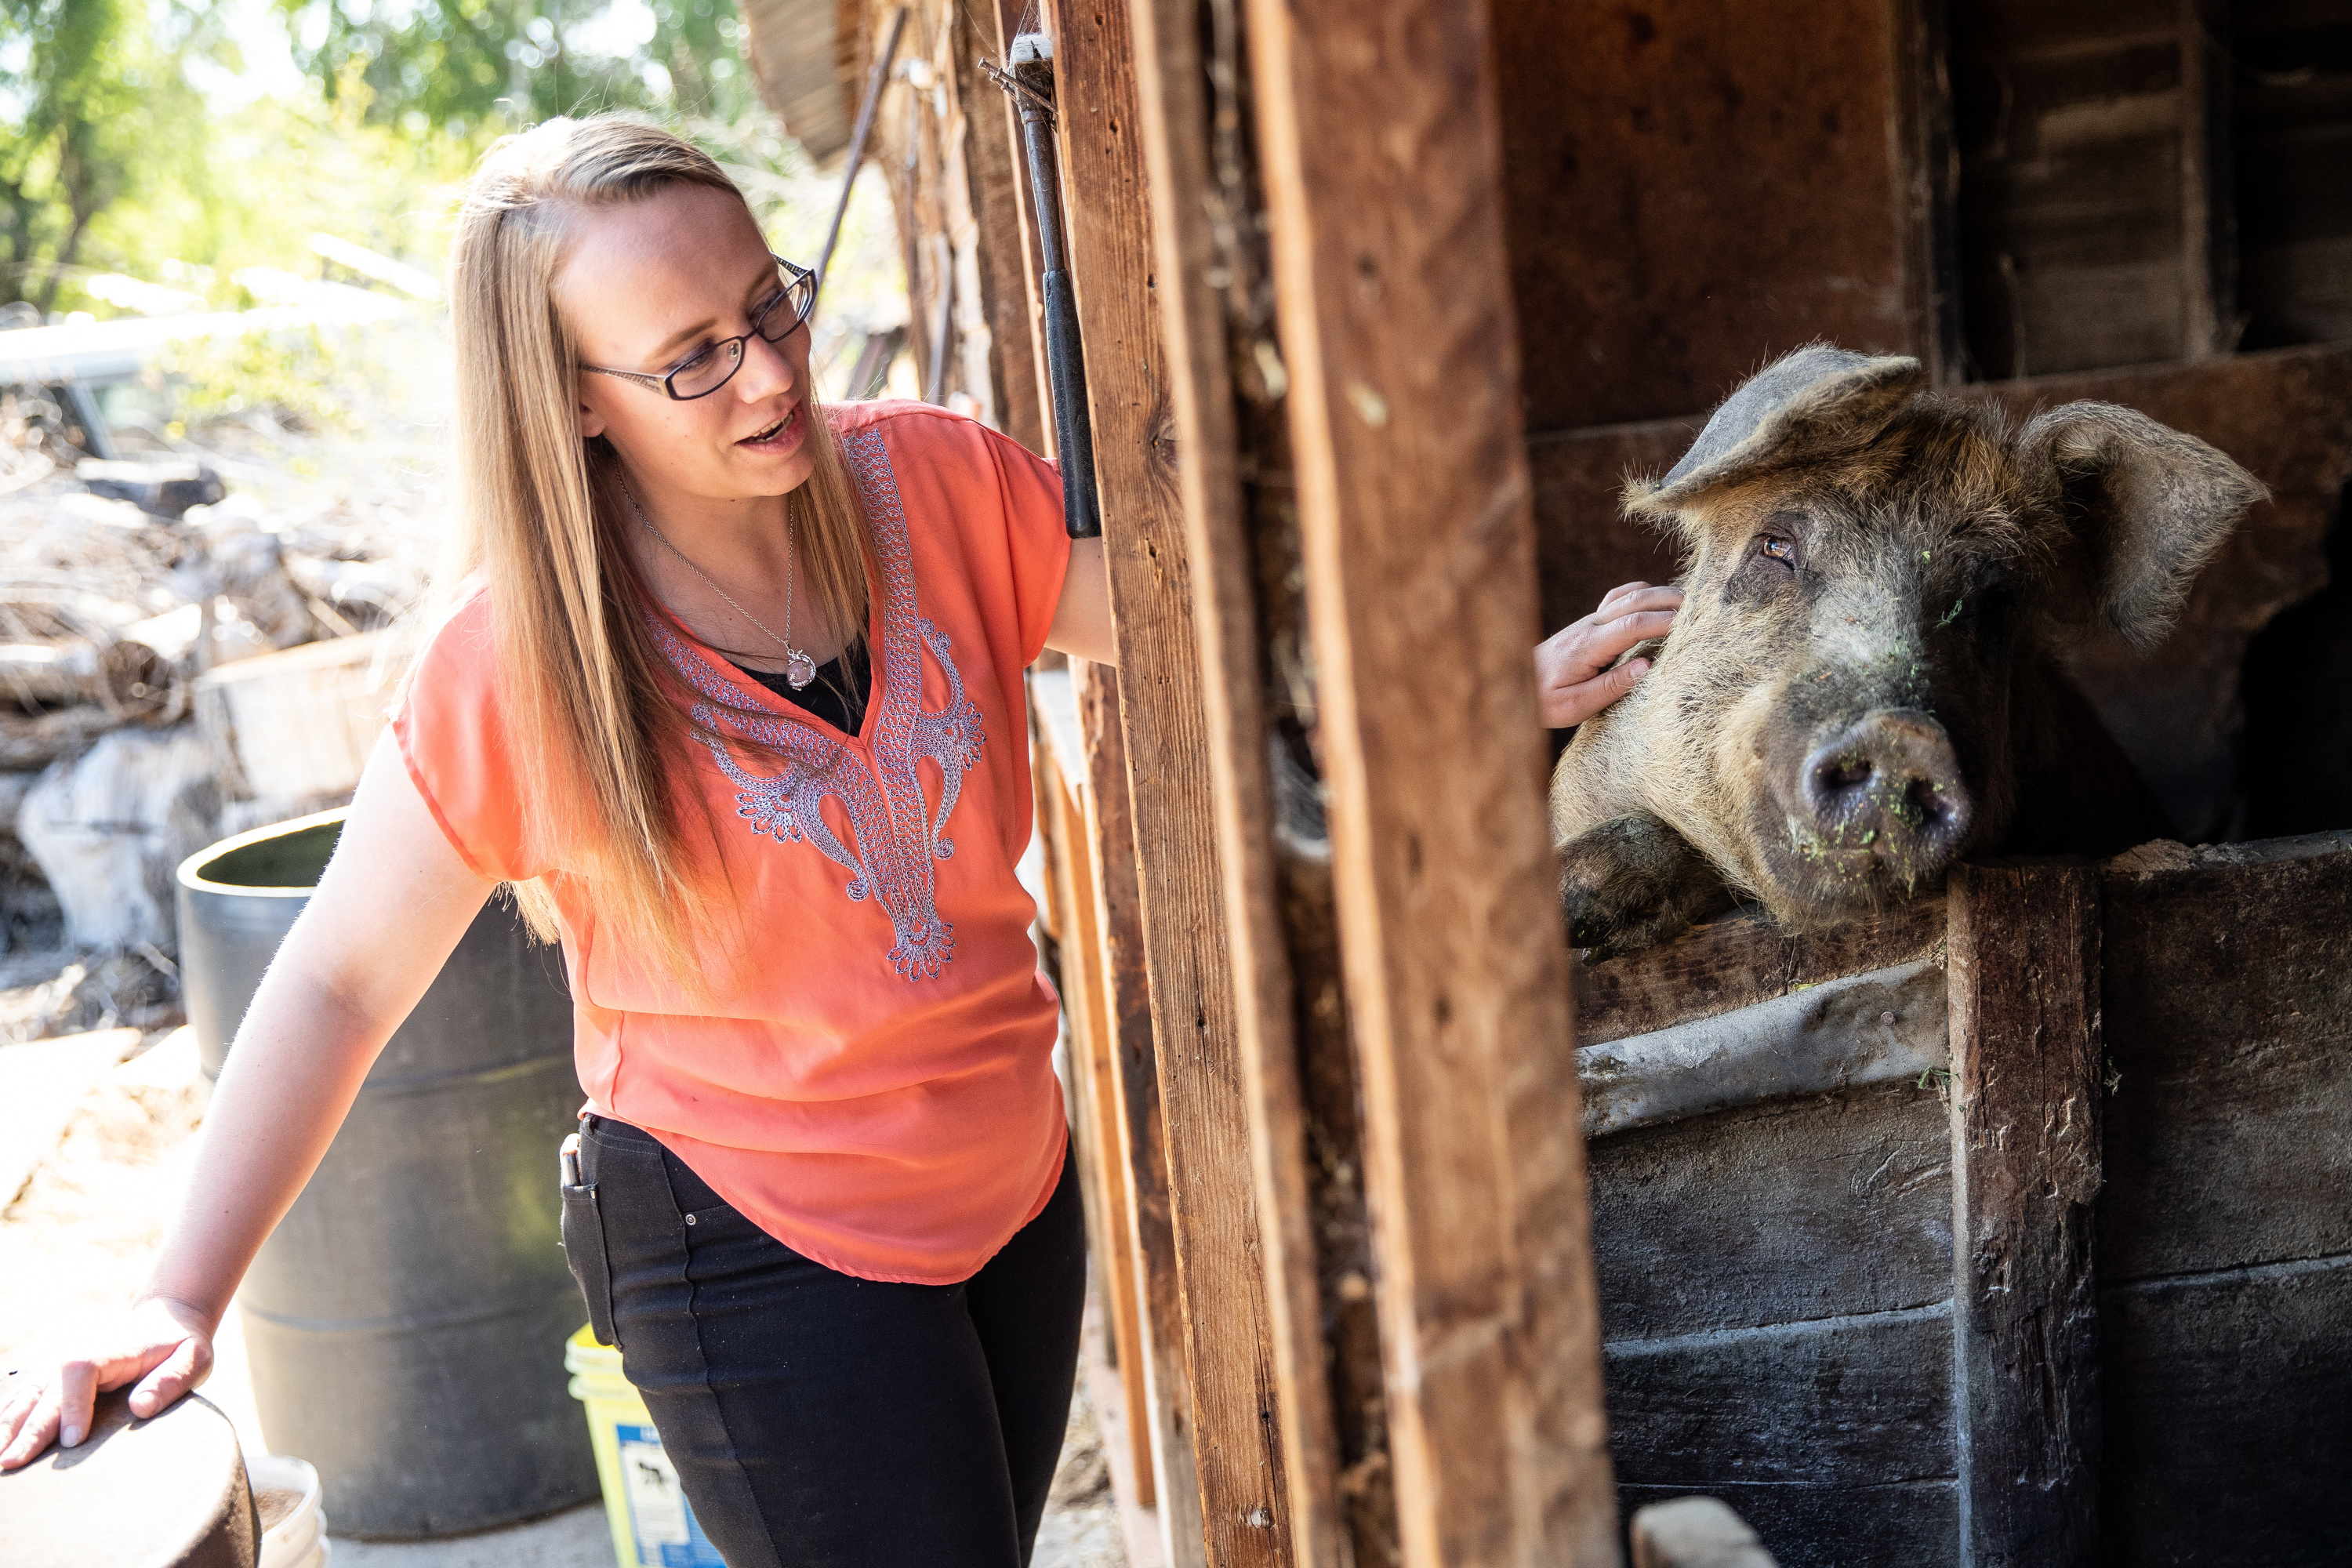 Alexandria, 23, pets Ginger, one of her family's pigs, at her home in Herriman on Tuesday, May 29, 2018. Alexandria says she likes being around the pigs because they listen without judgement. She also likes working with animals because it gives her a sens